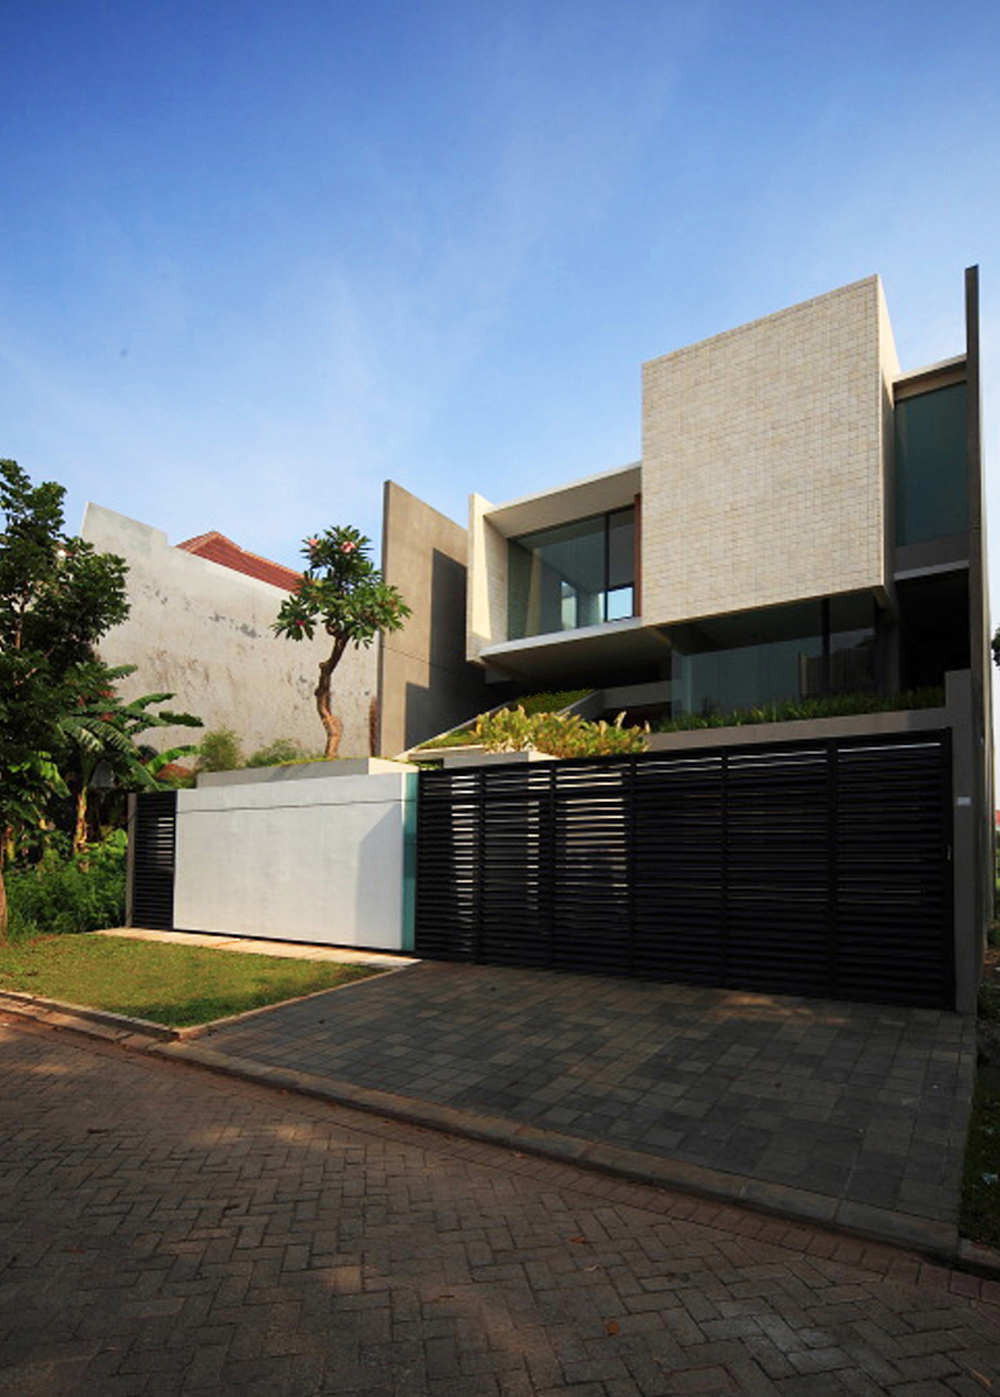 Tan Residence Chrystalline Artchitect Archdaily